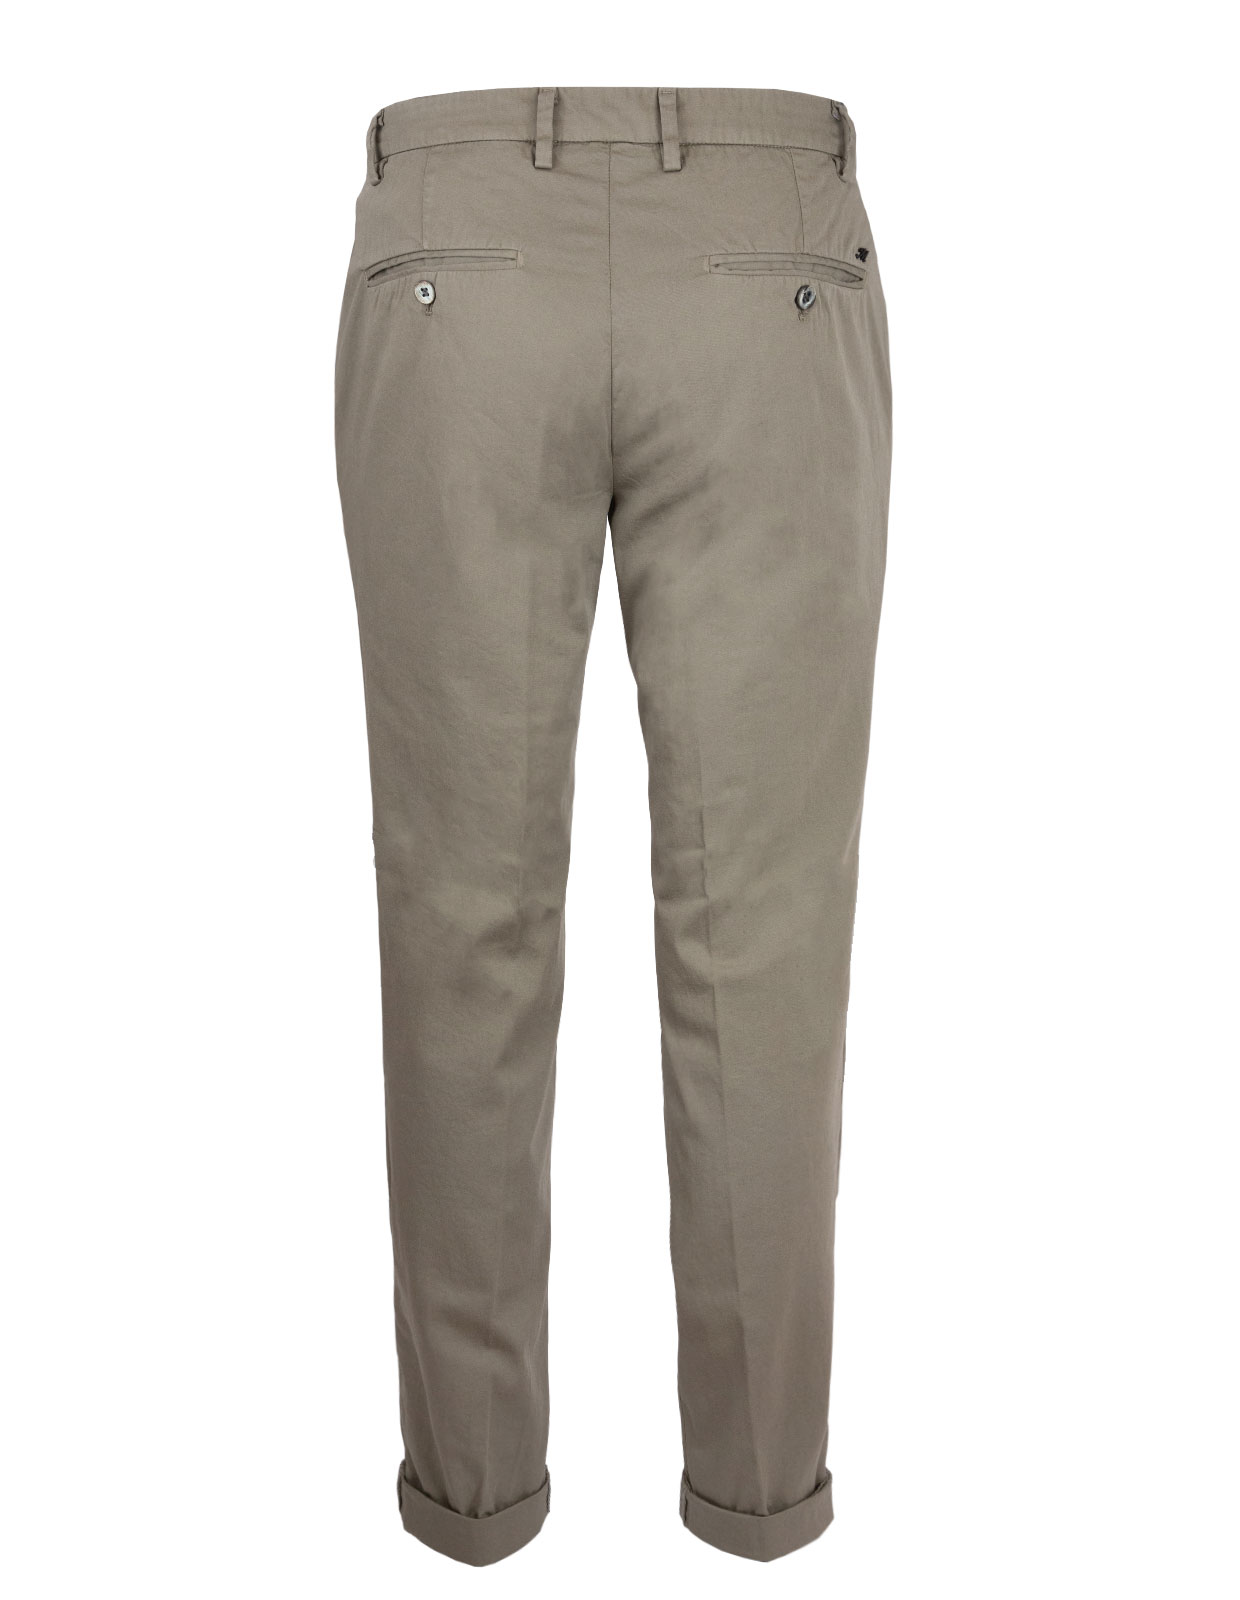 Milano Slim Chinos Cotton Satin Stretch Military